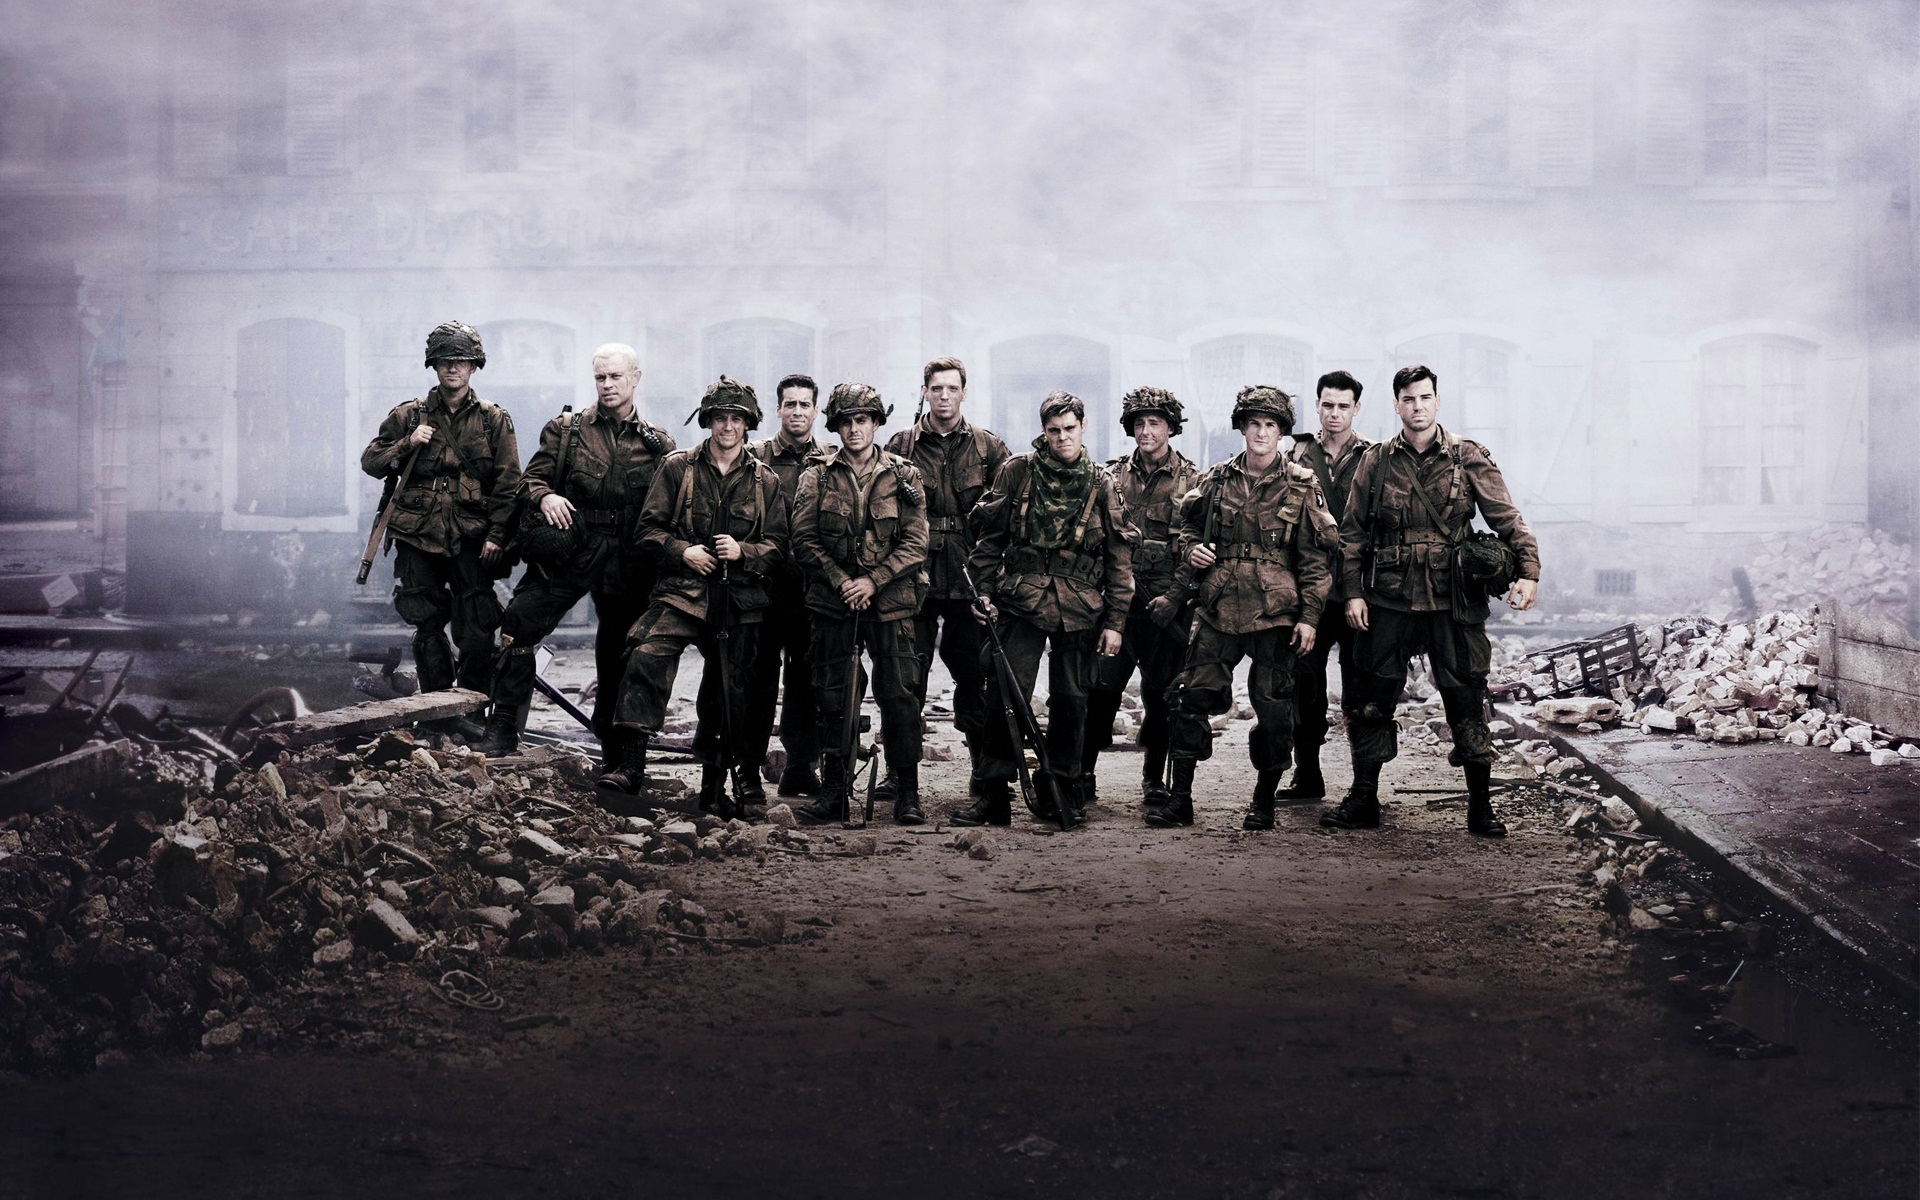 Band of Brothers Cast 873.2 Kb